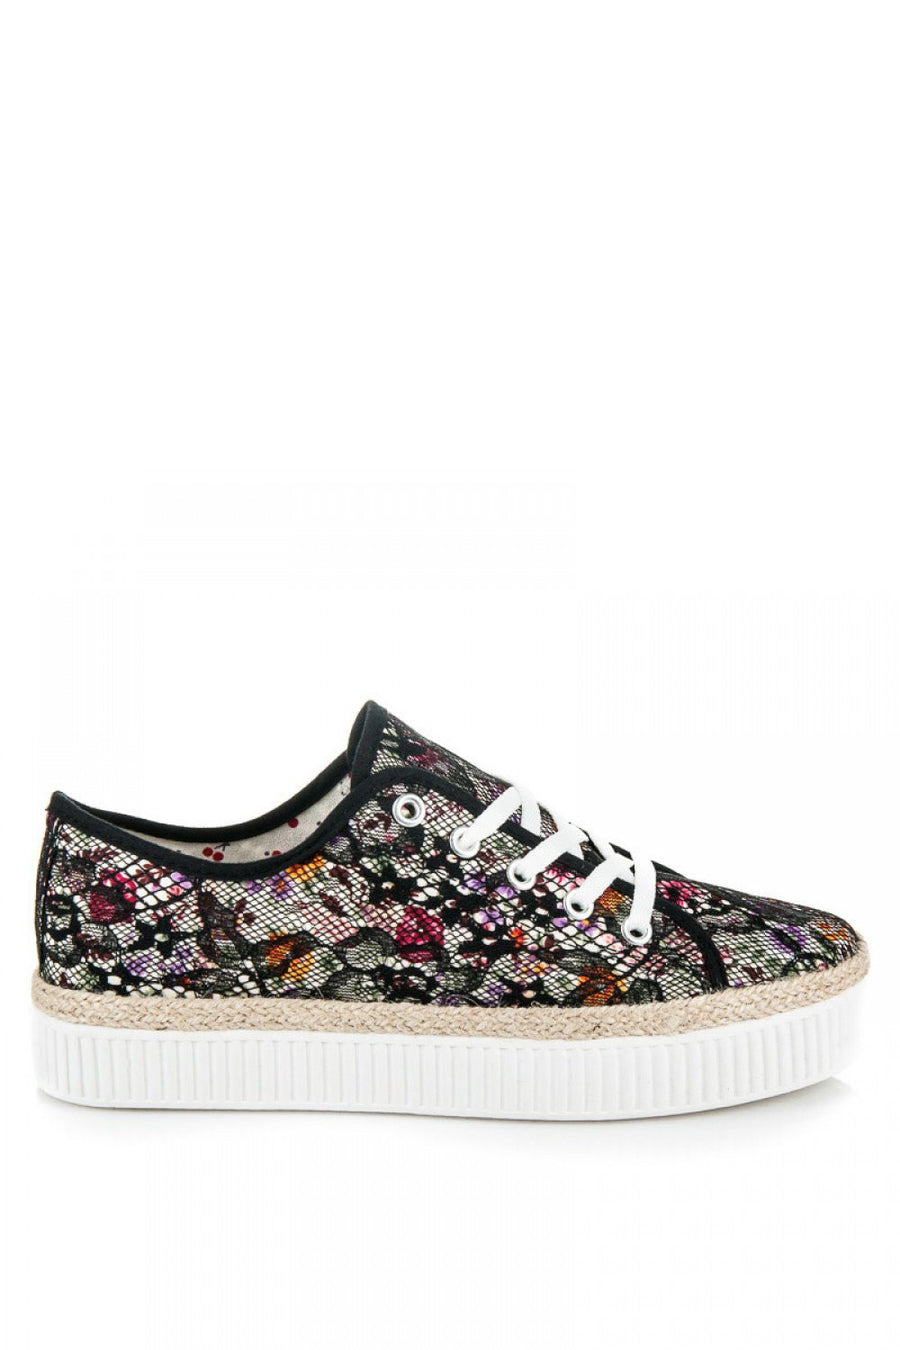 Espadrille 75664 Zoki-Women`s Athletic Shoes, Trainers, Sneakers-Zoki-Très Fancy